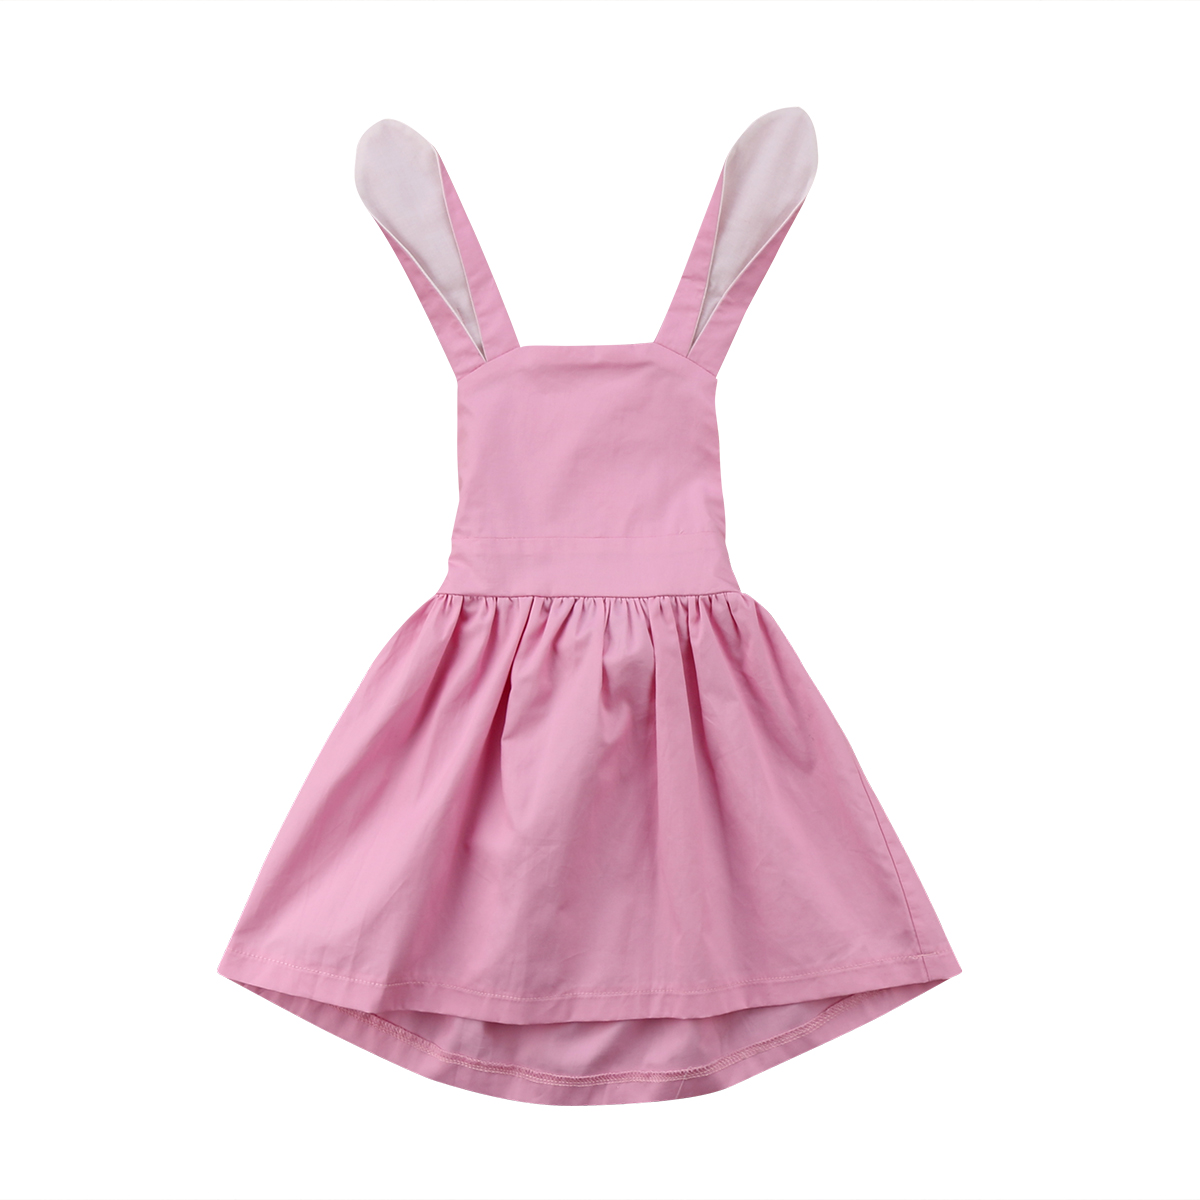 e72cf9e8a4bc4 pudcoco Child Baby Girls Pink Easter Dress Romper Clothes Rabbit Ear Dress  Outfits baby girl summer